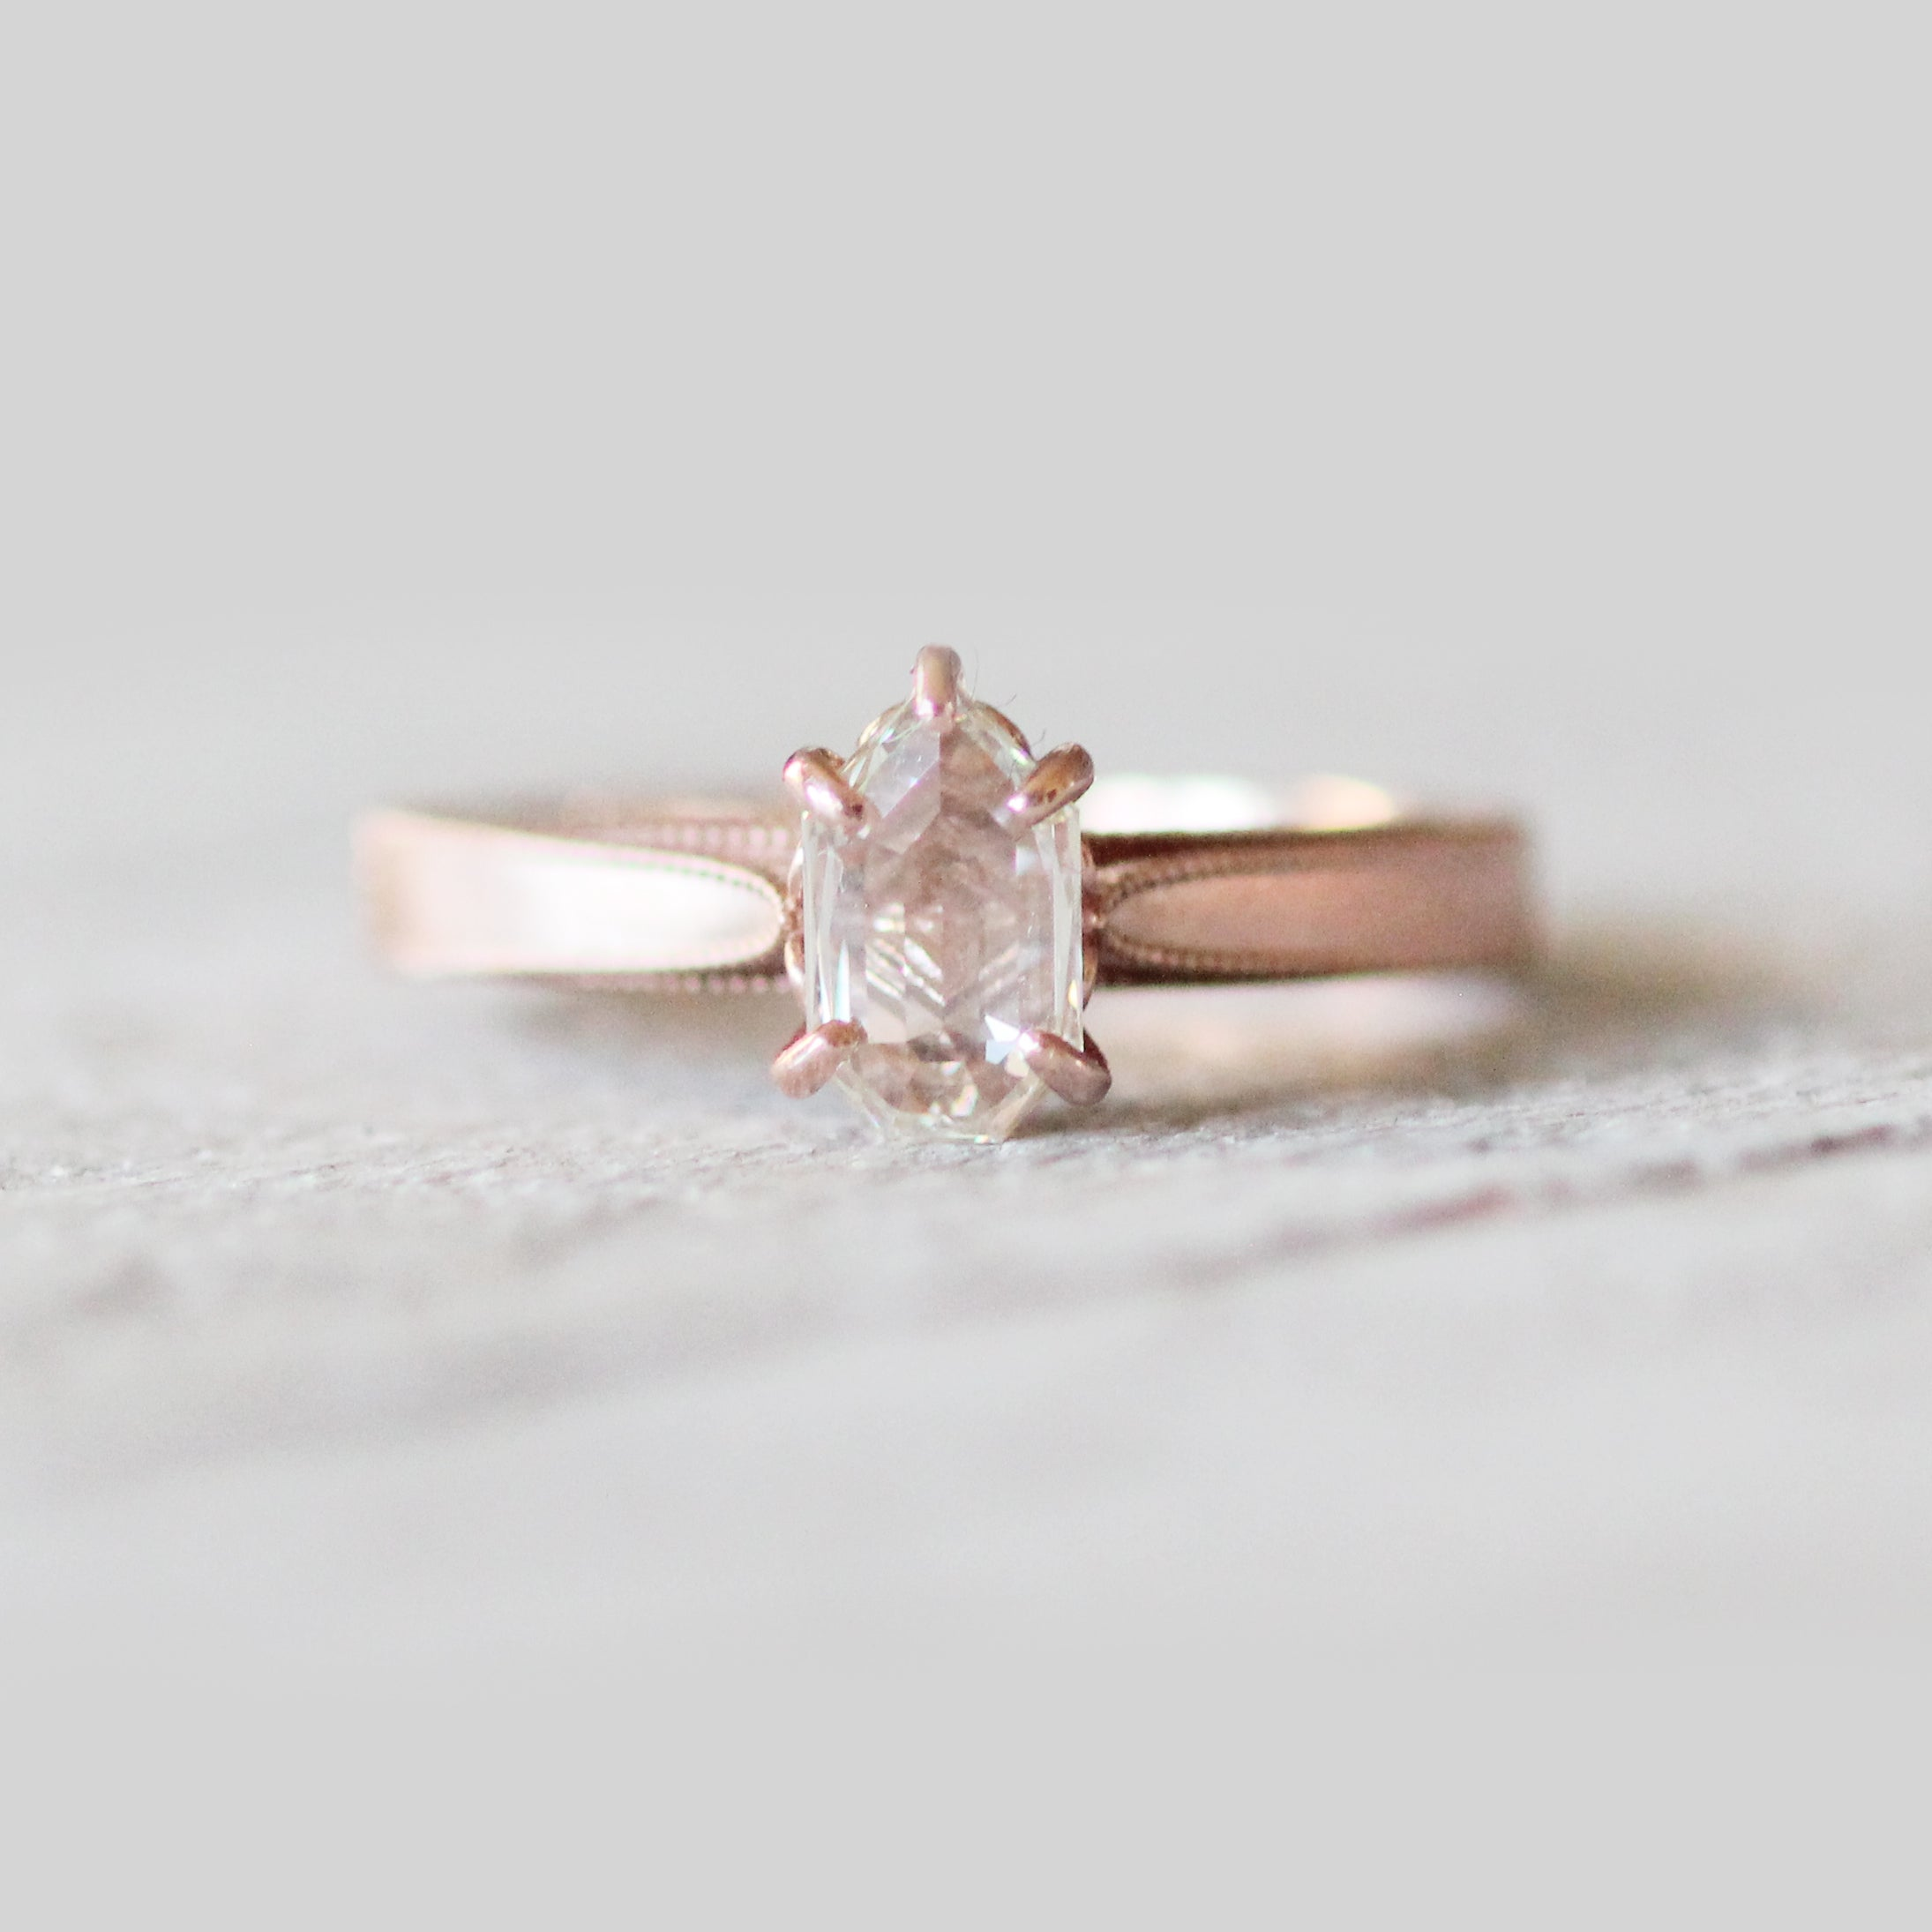 Jane setting - Midwinter Co. Alternative Bridal Rings and Modern Fine Jewelry